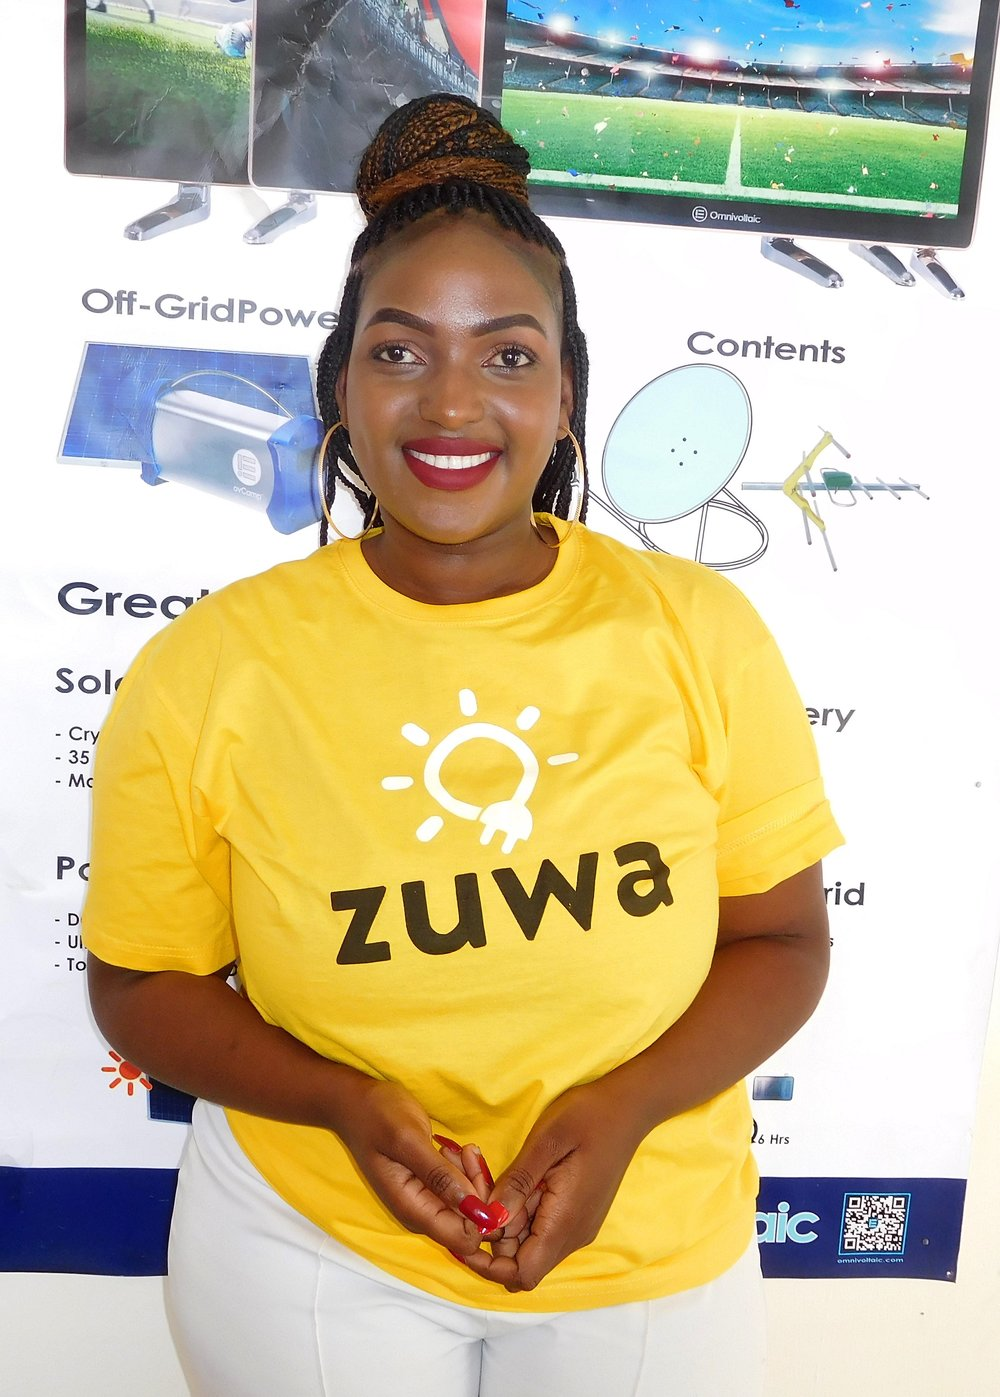 """Cynthia Domoya - """"I am a student at Pentecostal life University studying community development. I became first a Zuwa sales representative, then an agent because of my passion to meet and interact with different people and this job gives me the chance to do that. I also love selling Zuwa products because I represent a great brand that has products that are unique i.e. last long hours when fully charged and are affordable to everyone."""""""